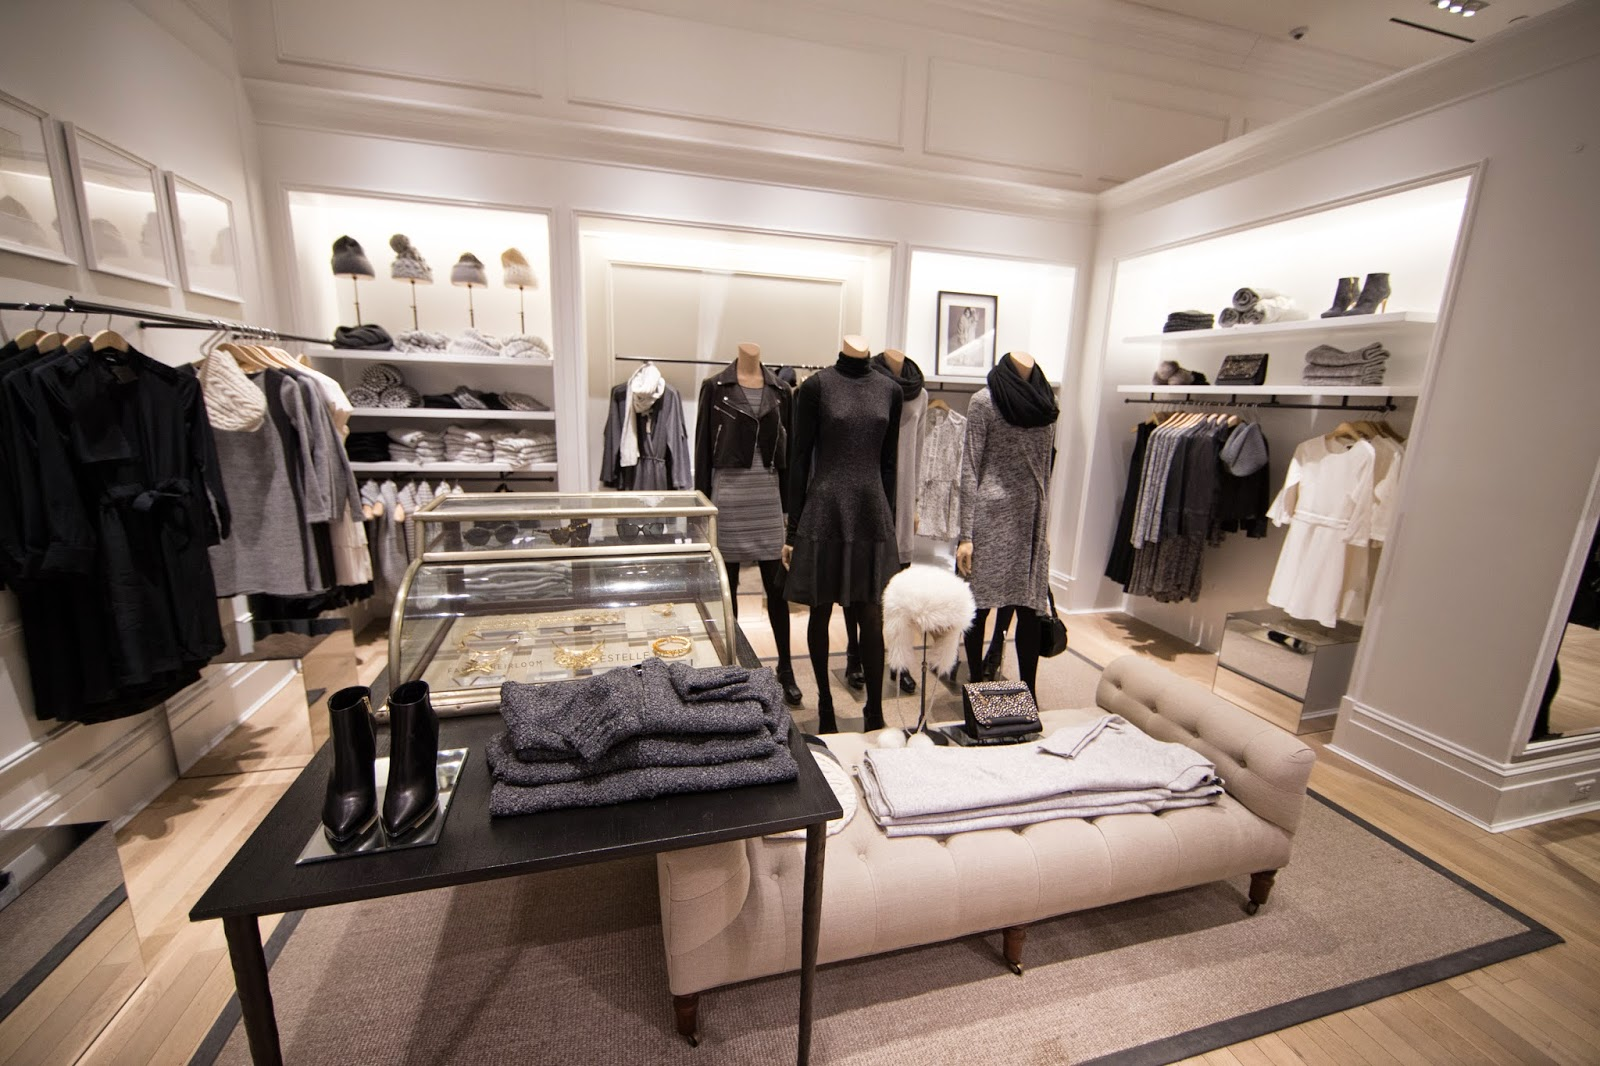 Club Monaco is a women's and men's fashion brand built on thoughtful, versatile design that celebrates the individual. Club Monaco is a women's and men's fashion brand built on thoughtful, versatile design that celebrates the individual.